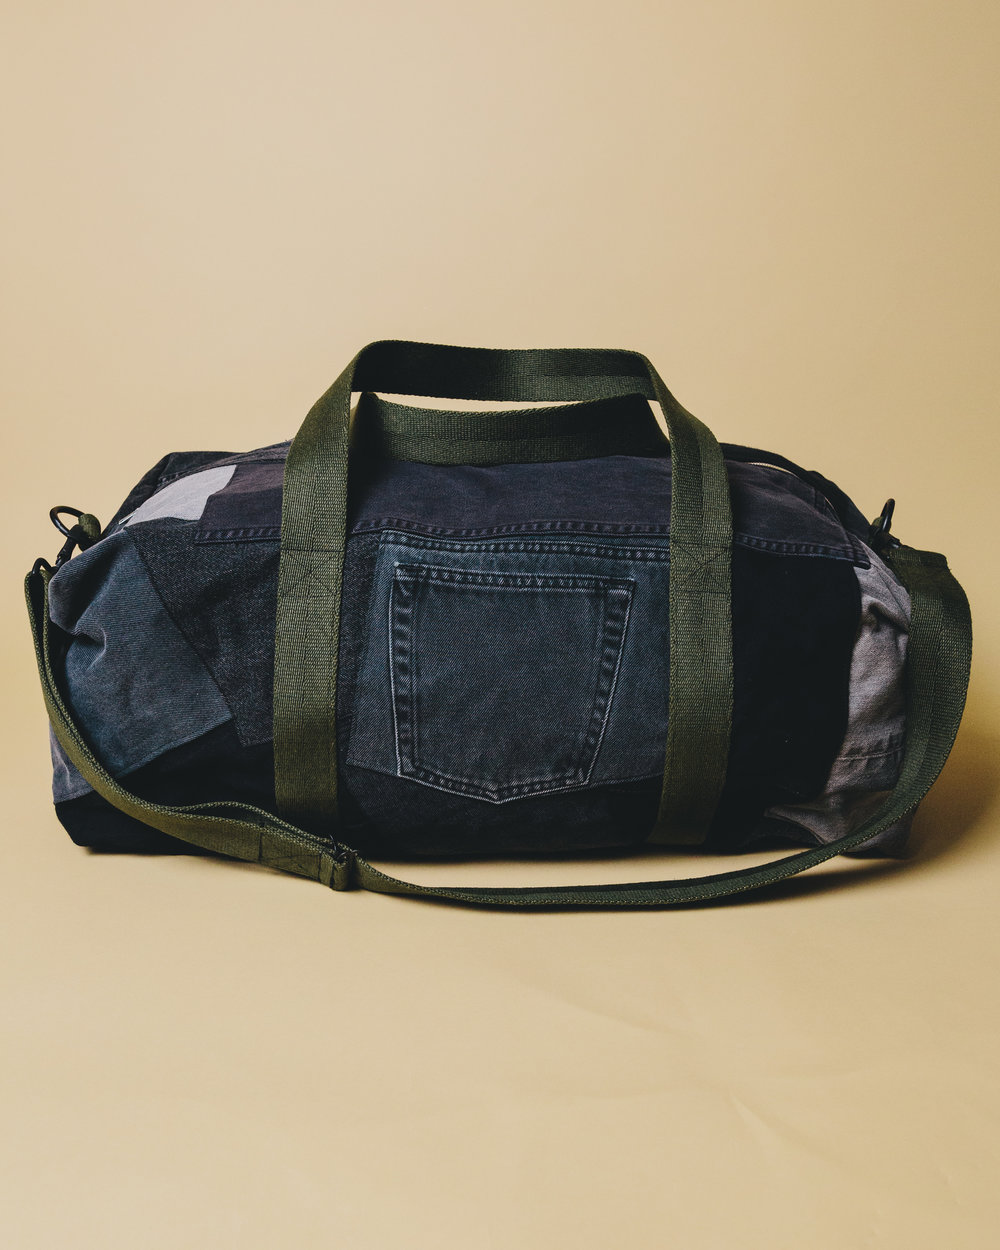 Large Levi's Bag - A large duffel bag I made from various vintage denim & surplus military straps.